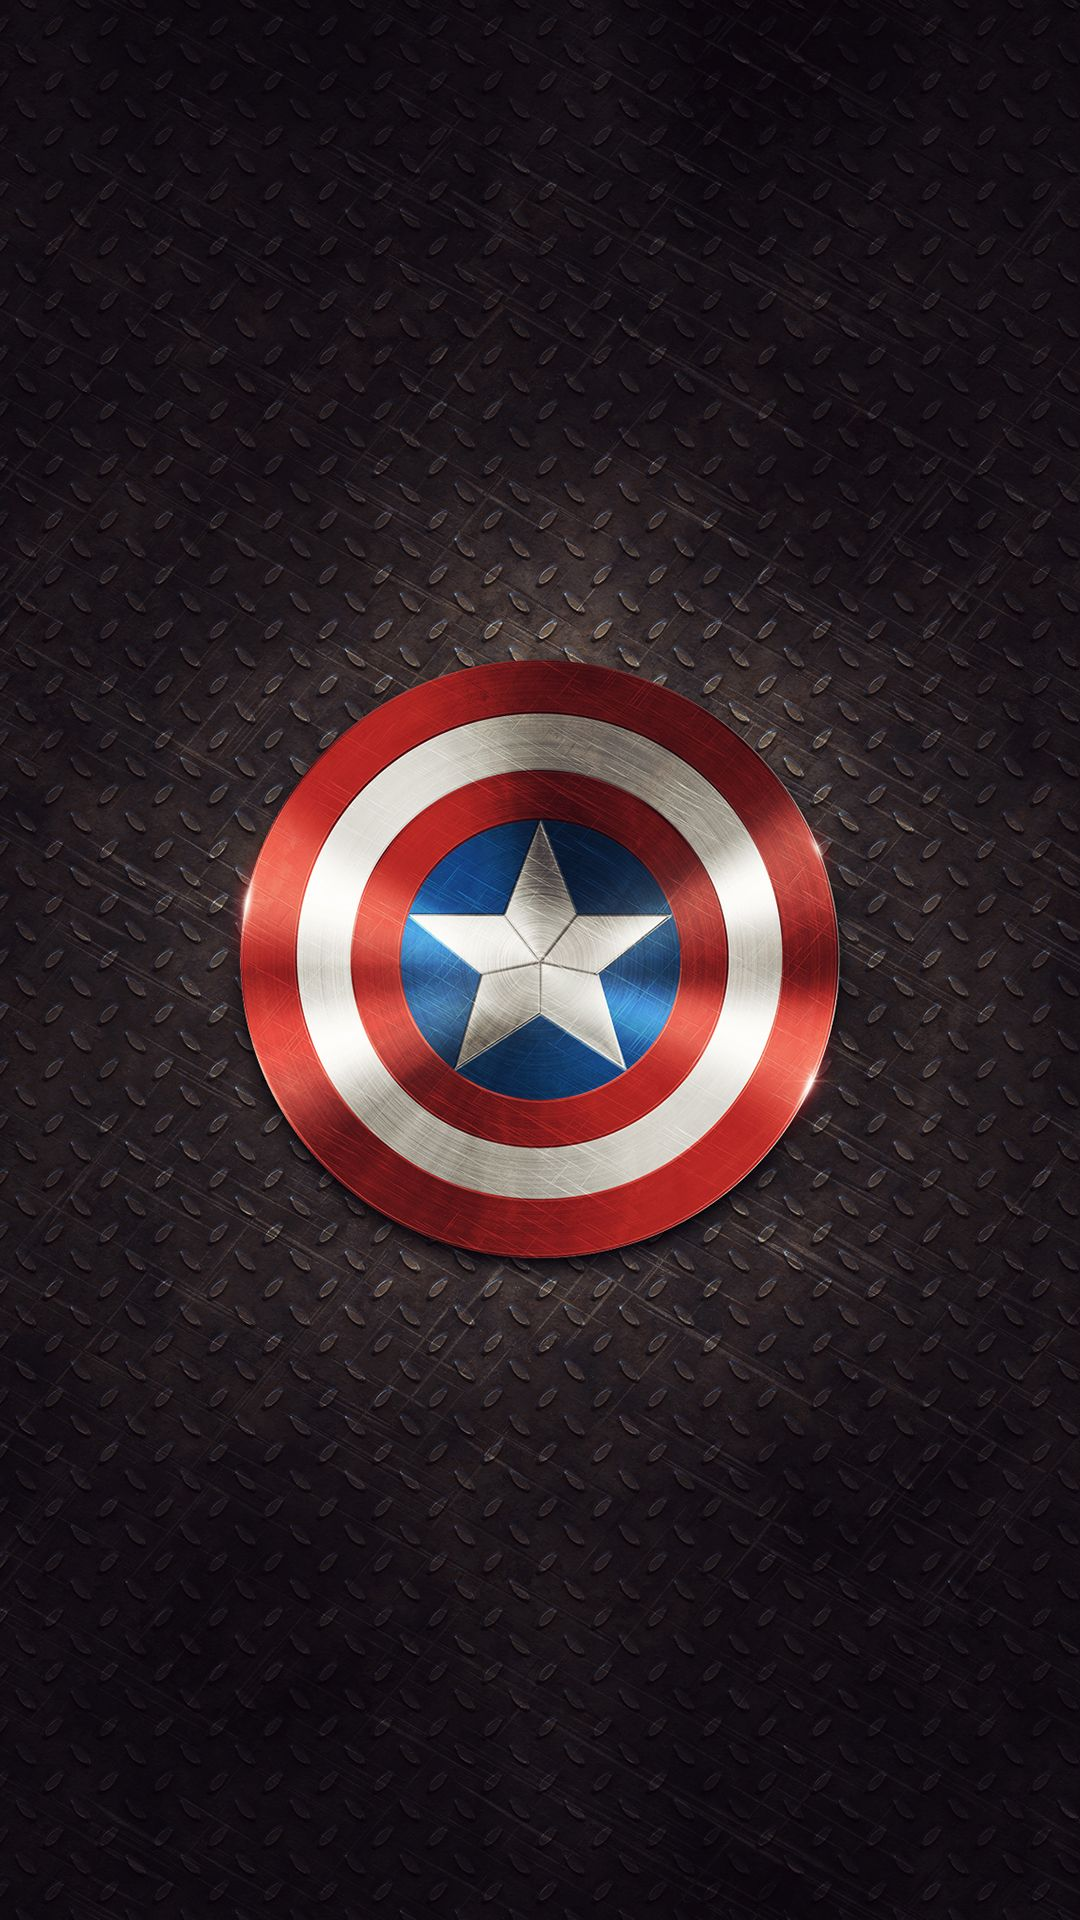 Captain America Shield Captain America Wallpaper Captain America Shield Wallpaper Captain America Shield